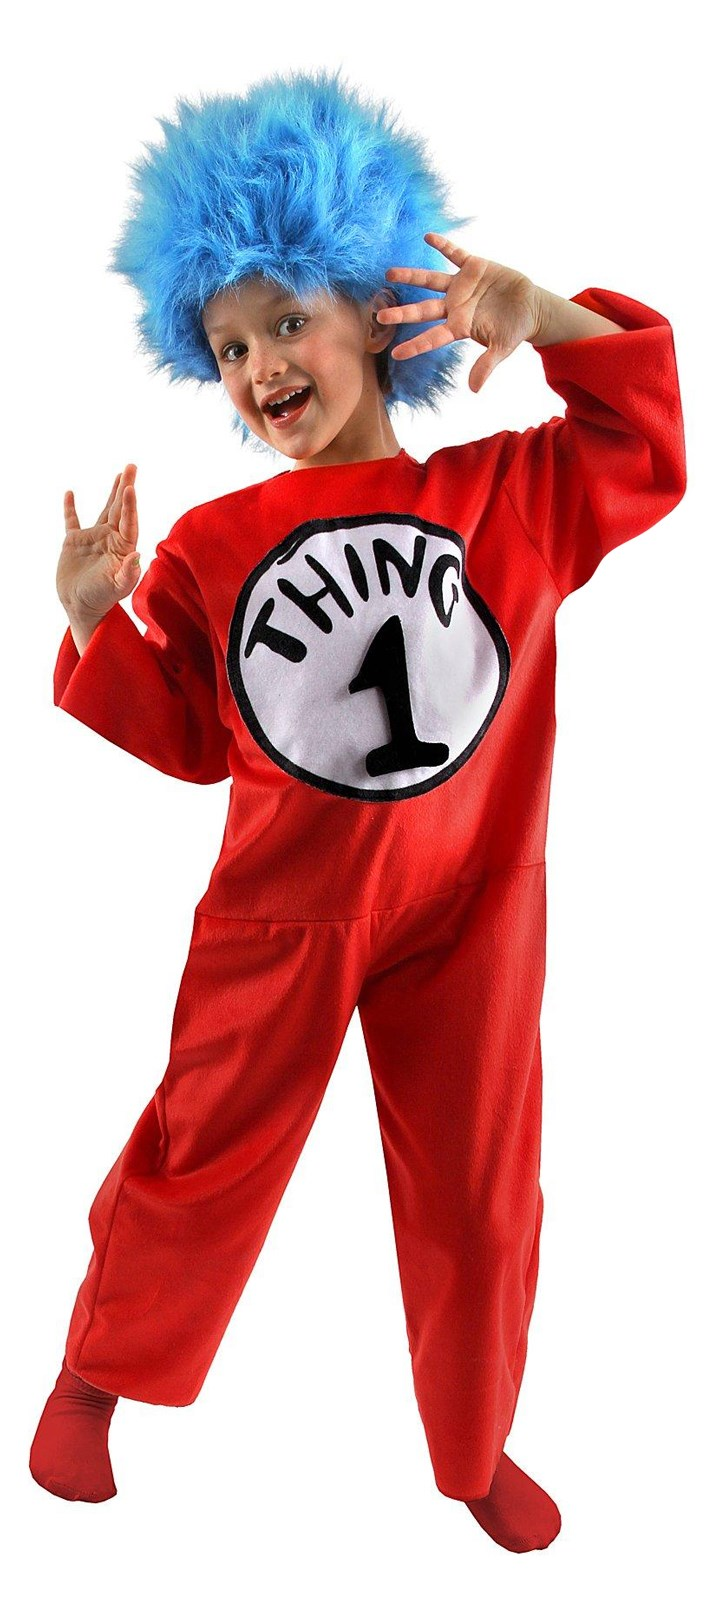 Dr. Seuss The Cat in the Hat - Thing 1 or Thing 2 Child Costume S (4-6)